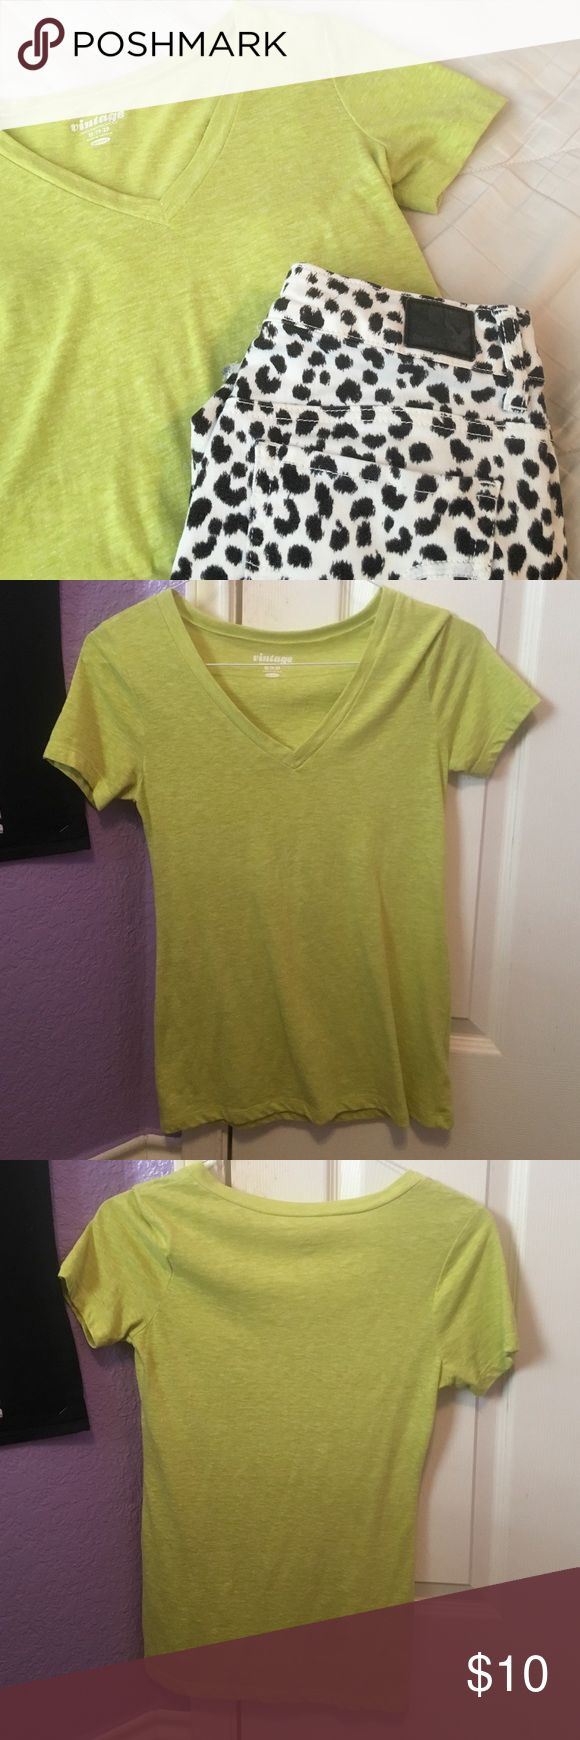 Lime Green V-Neck Lime Green v-neck from Old Navy. Used but in good condition. Also available in teal and pink in separate listings. Shorts in cover photo sold separately. PLEASE READ THE ENTIRE DESCRIPTION BEFORE PURCHASING! 🚫 NO TRADES. NO HOLDS. NO MERC@RI 🚫📩 I only respond to offers made through the offer button 📩  🙋🏼Questions? Just ask! Serious inquiries only please. EVERYTHING MUST GO!! 💁🏼 Old Navy Tops Tees - Short Sleeve